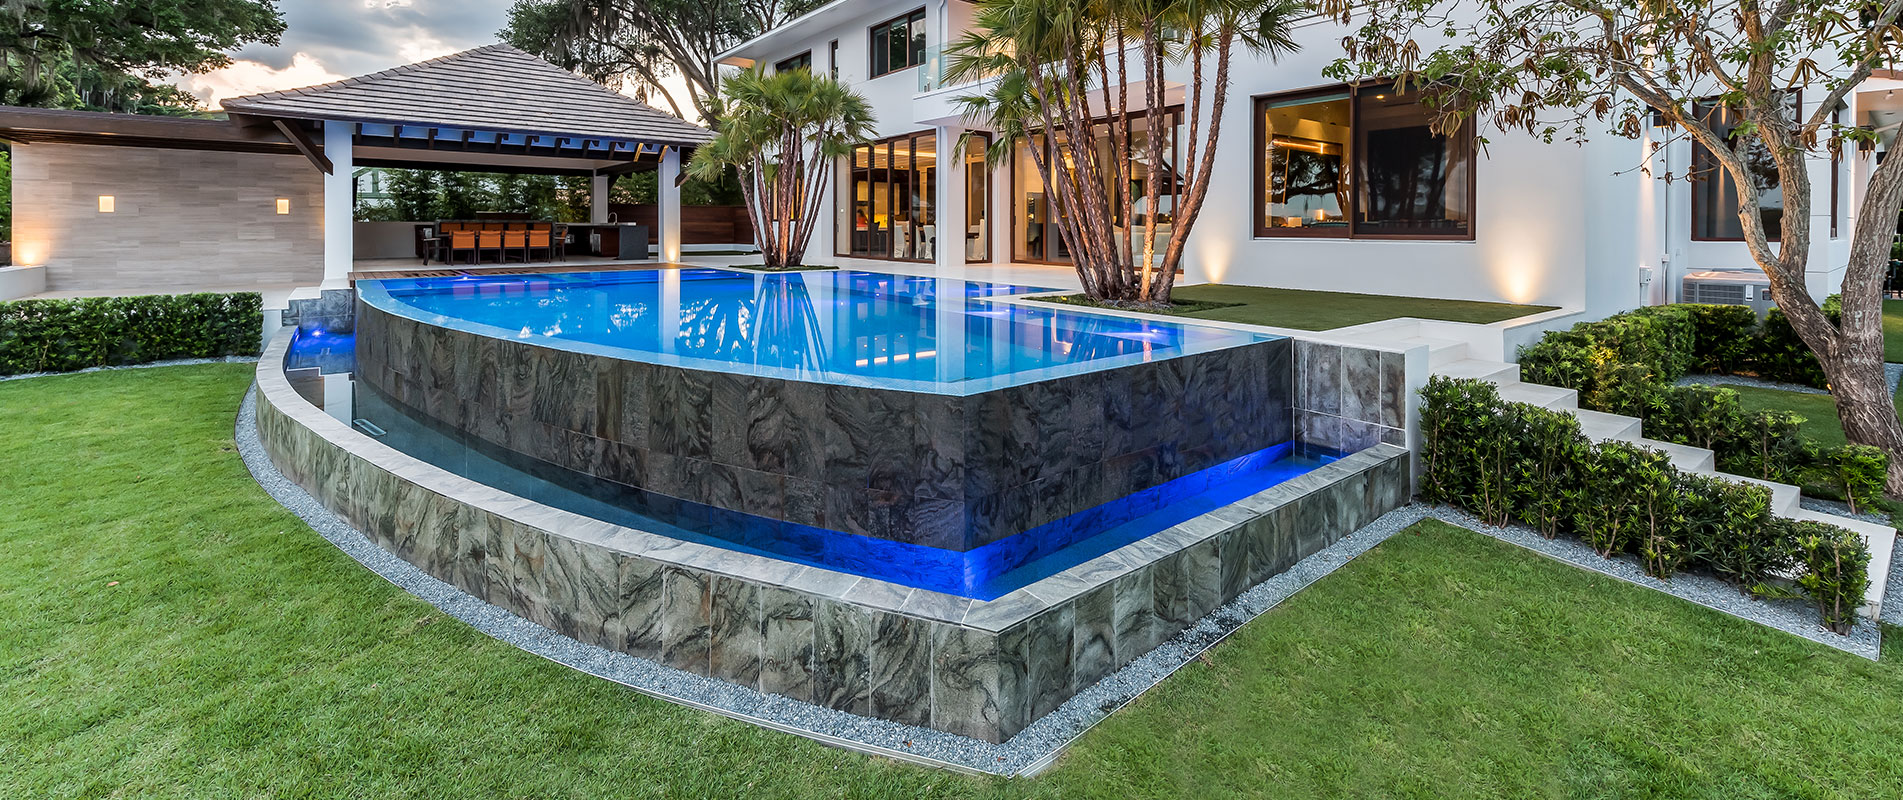 Custom-pool-with-infinity-edge-and-tile-interior-3